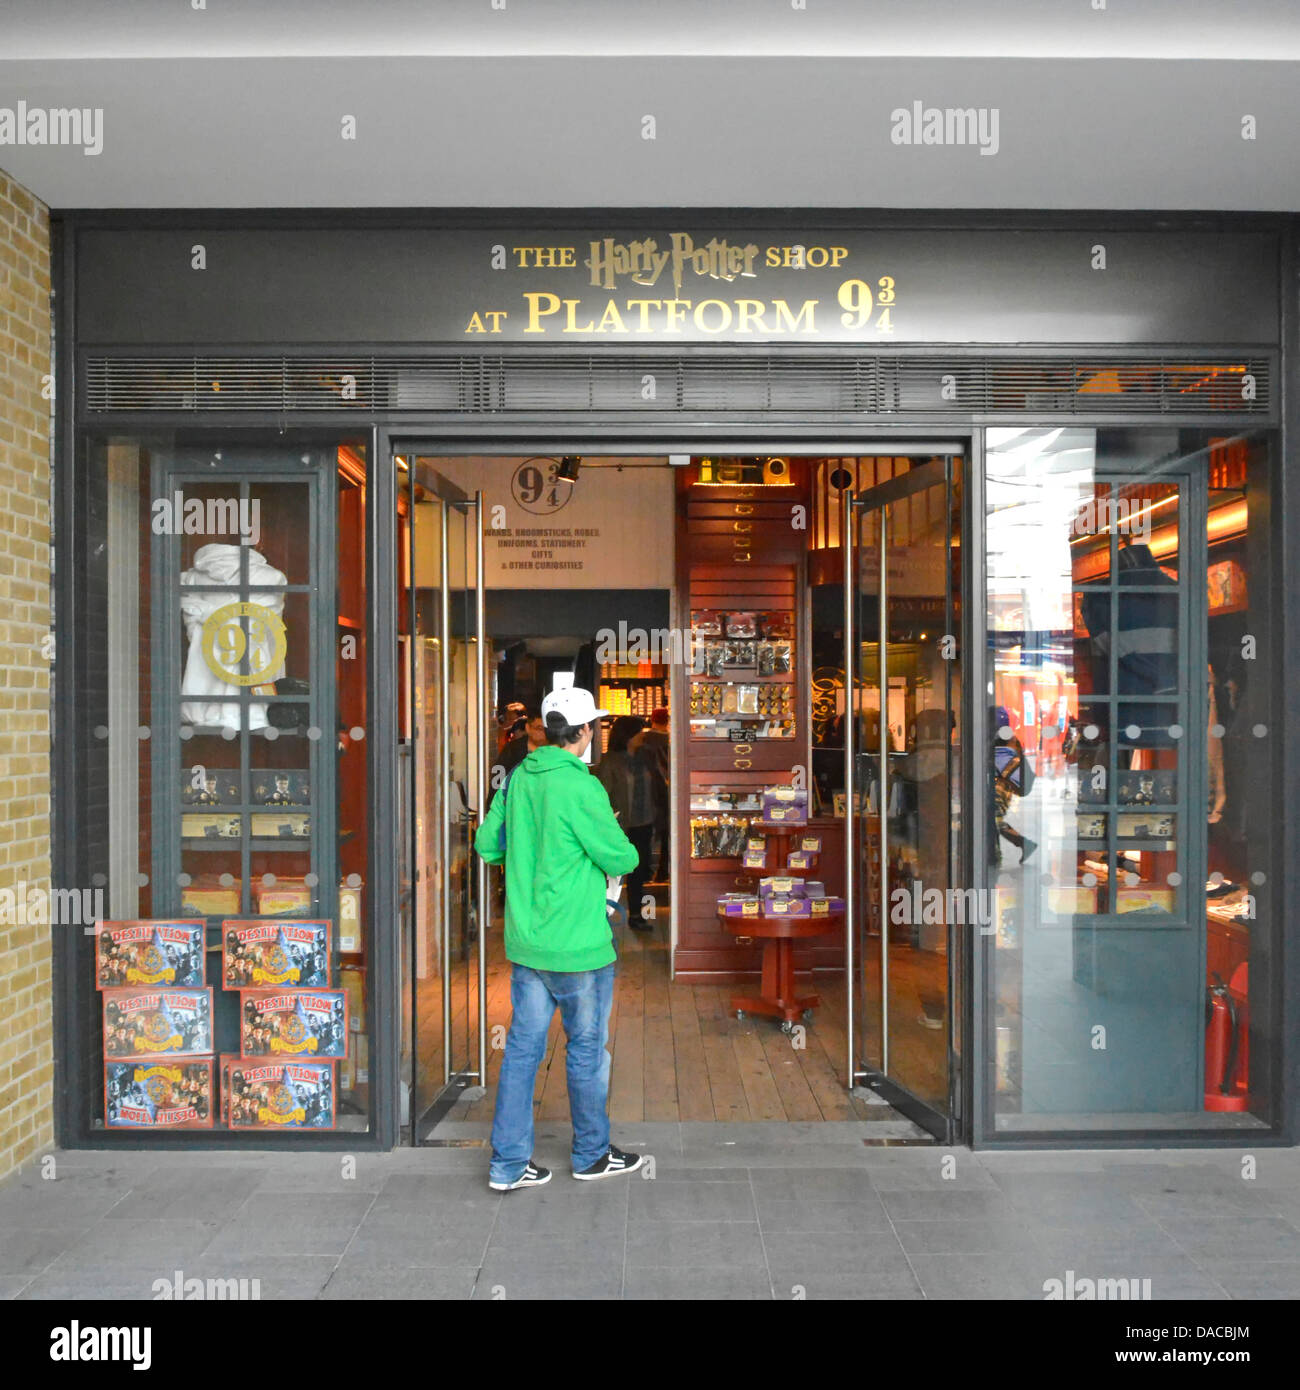 Harry Potter shop at platform nine and three quarters within Kings Cross railway station building - Stock Image